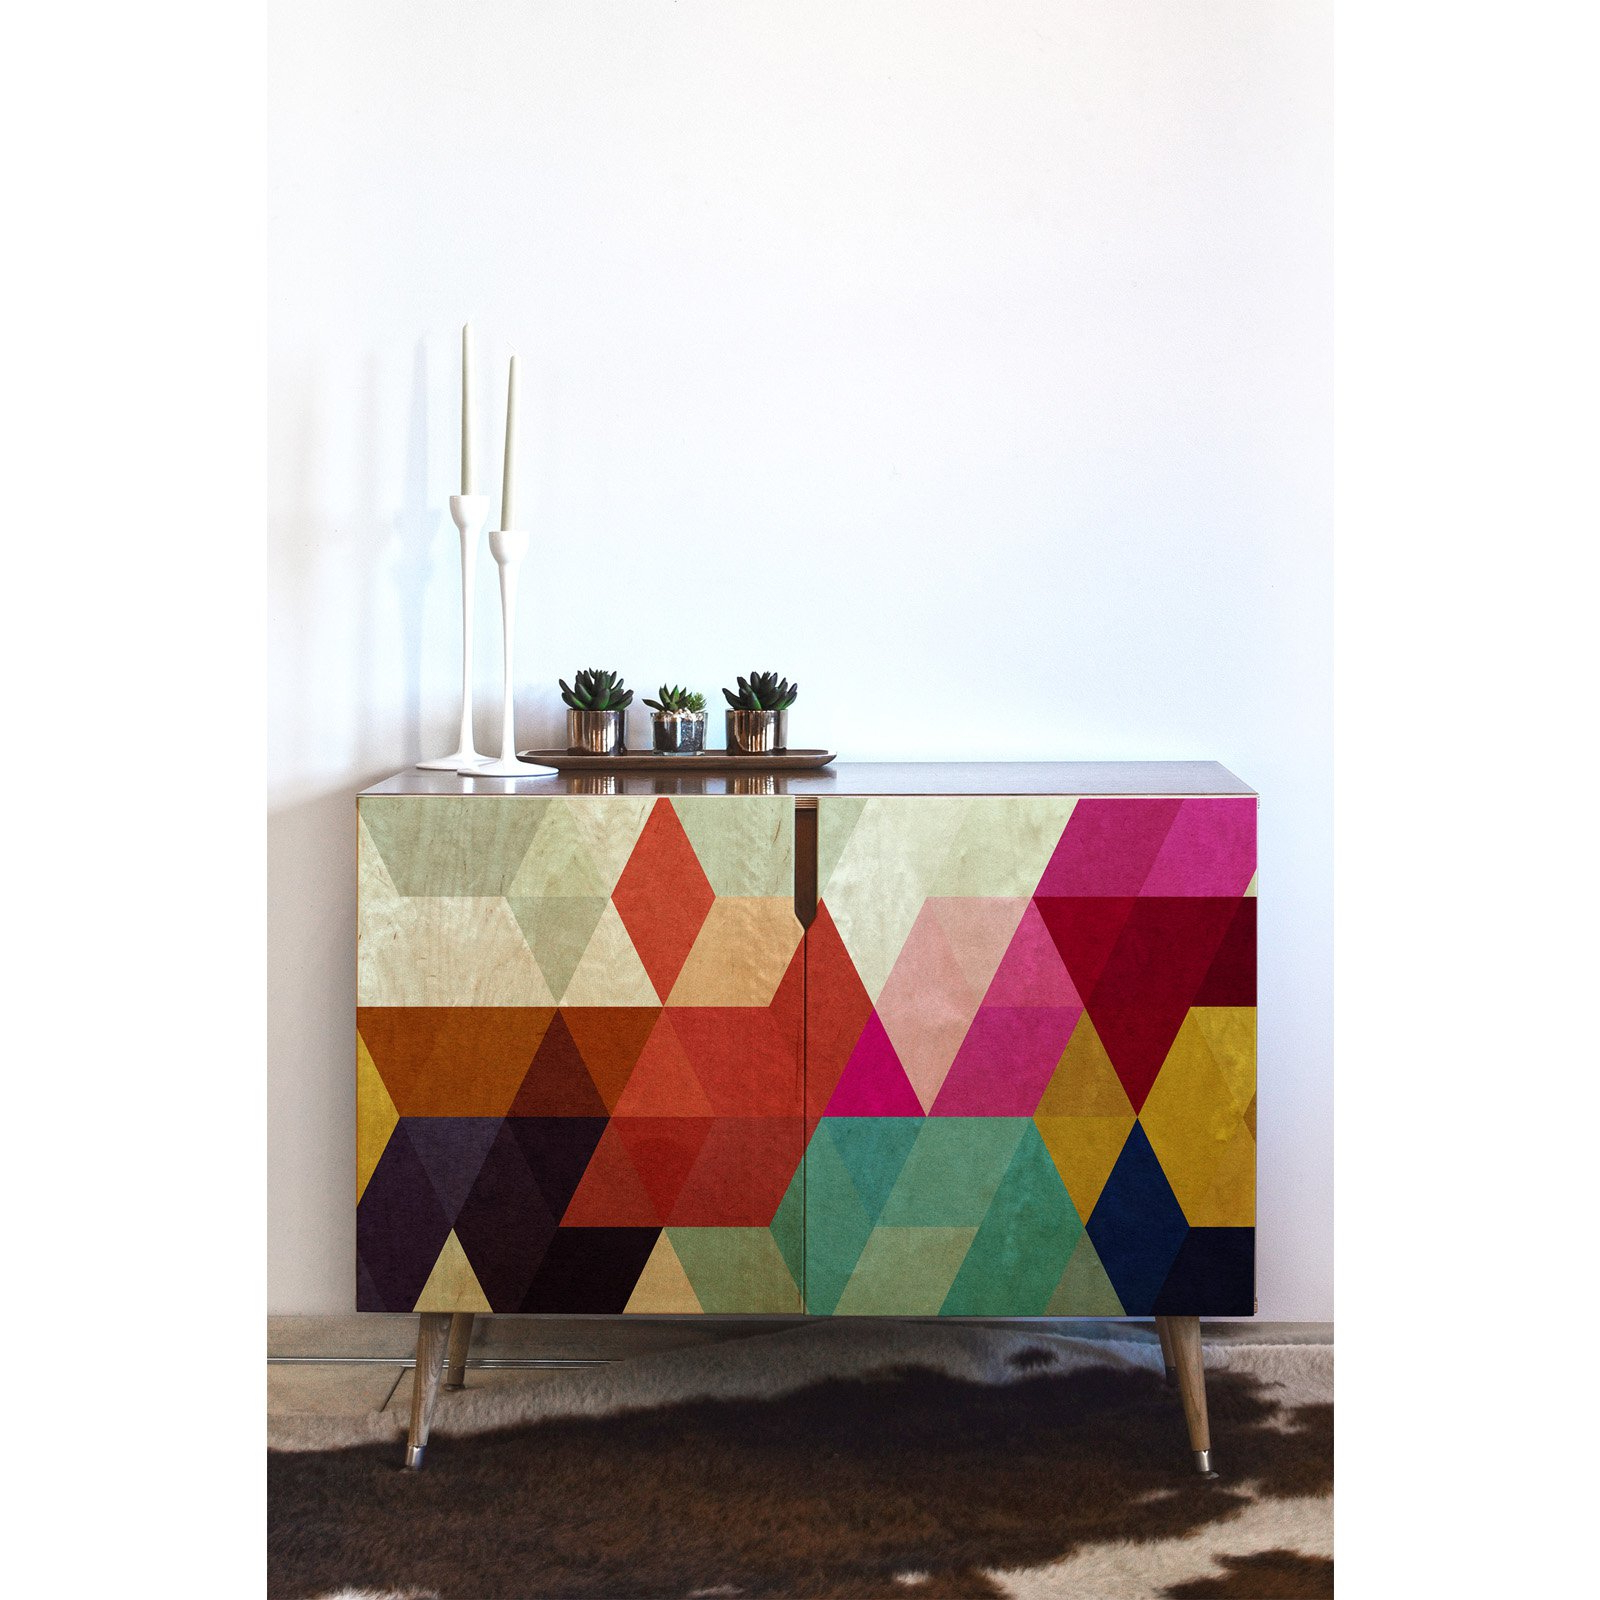 Deny Designs Three Of The Possessed Modele 7 Credenza In Regarding Modele 7 Geometric Credenzas (View 10 of 20)